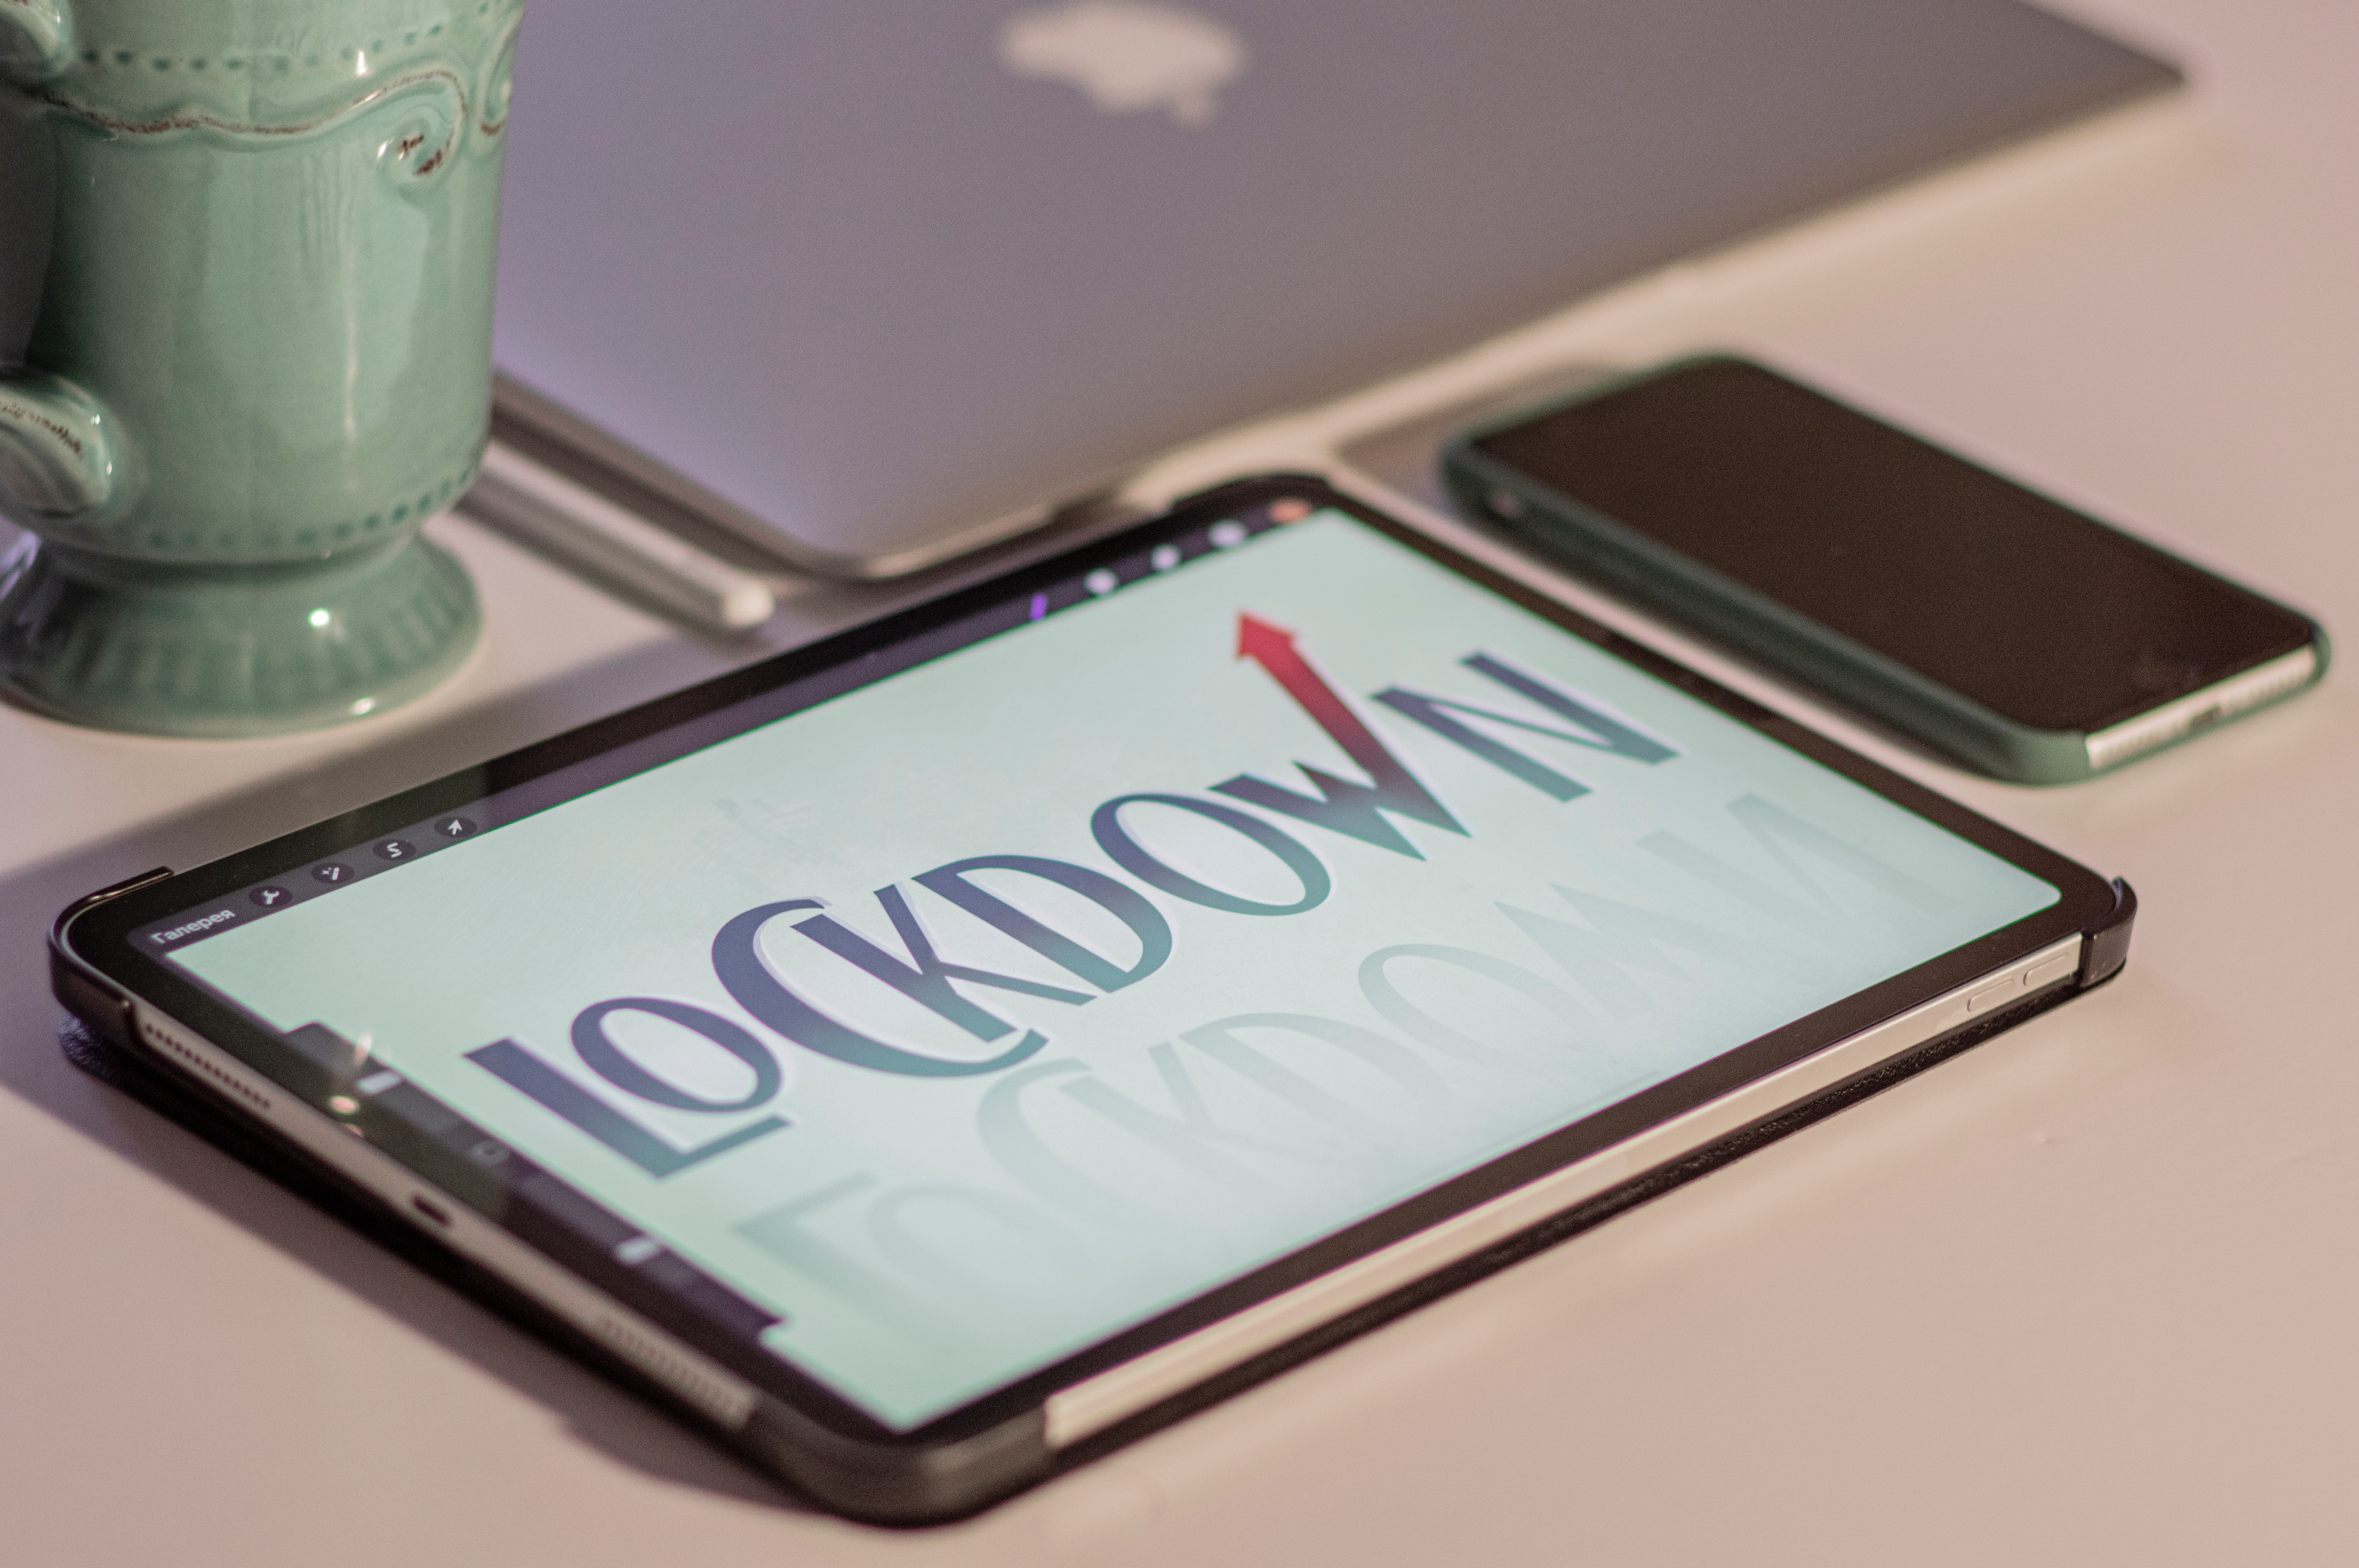 """Image of a tablet screen with """"Lockdown"""" displayed, on a table next to a phone and mug."""